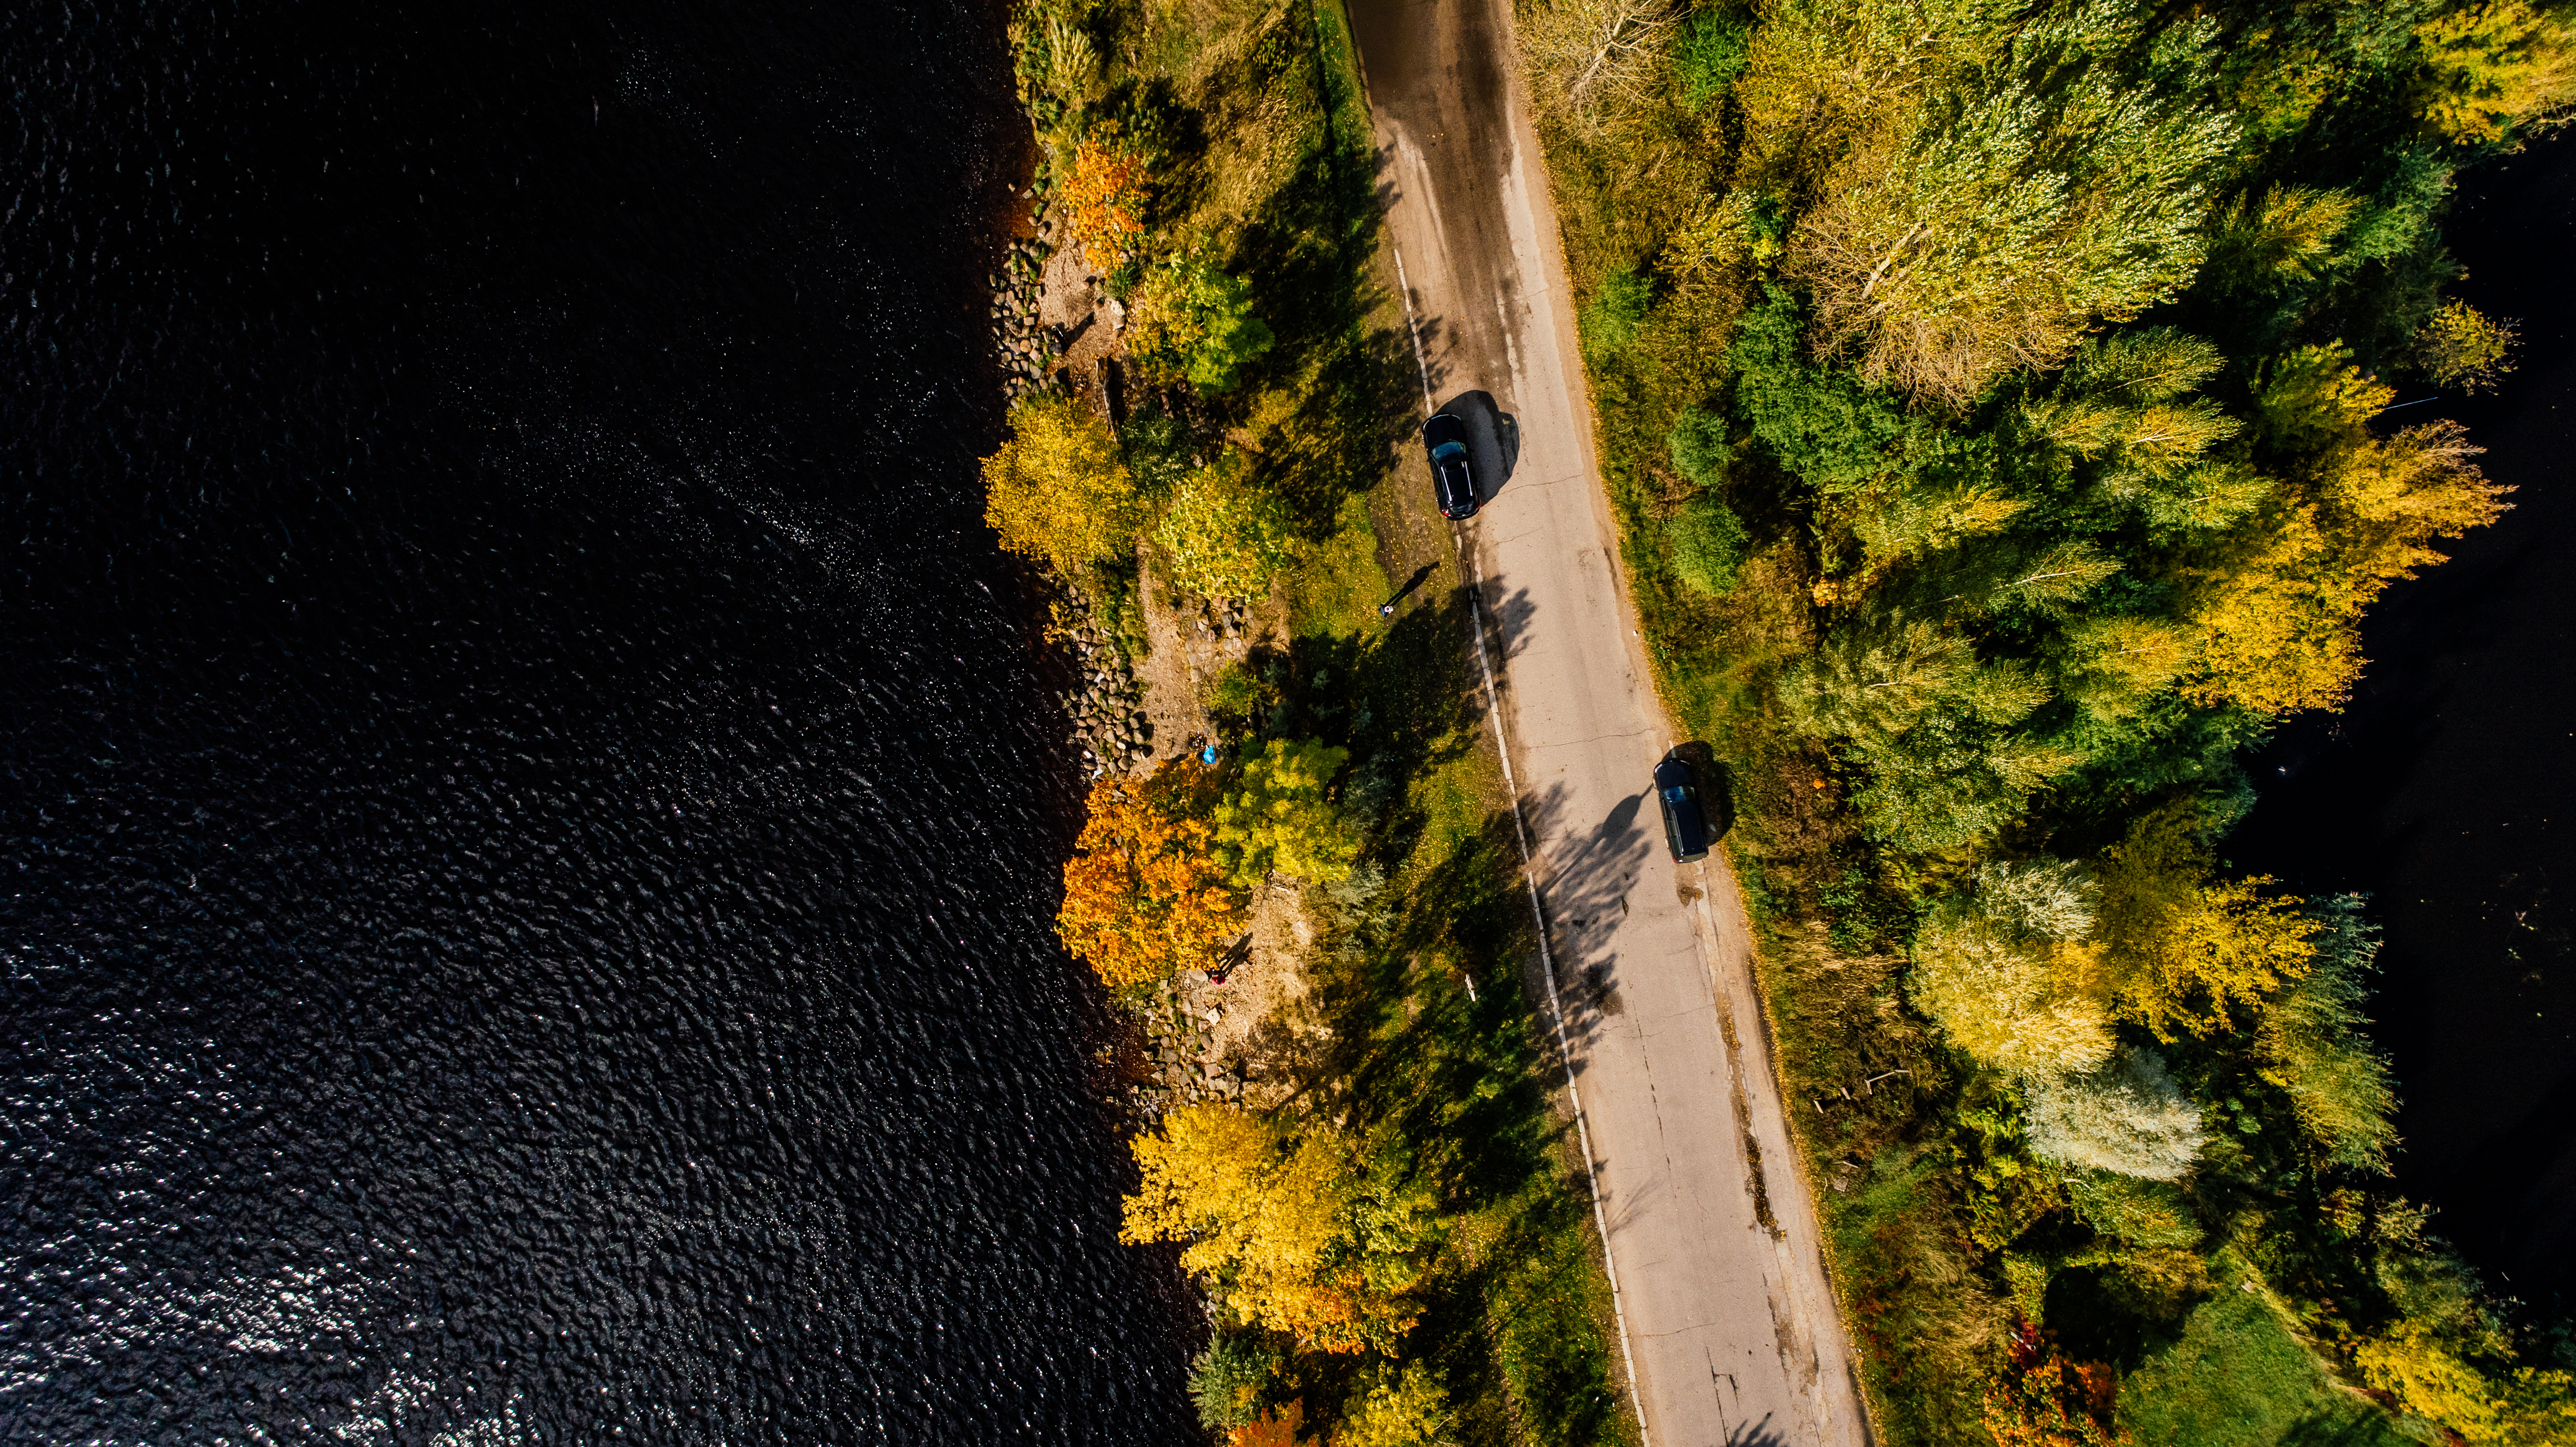 Aerial Photography of Road Between Trees on Body of Water